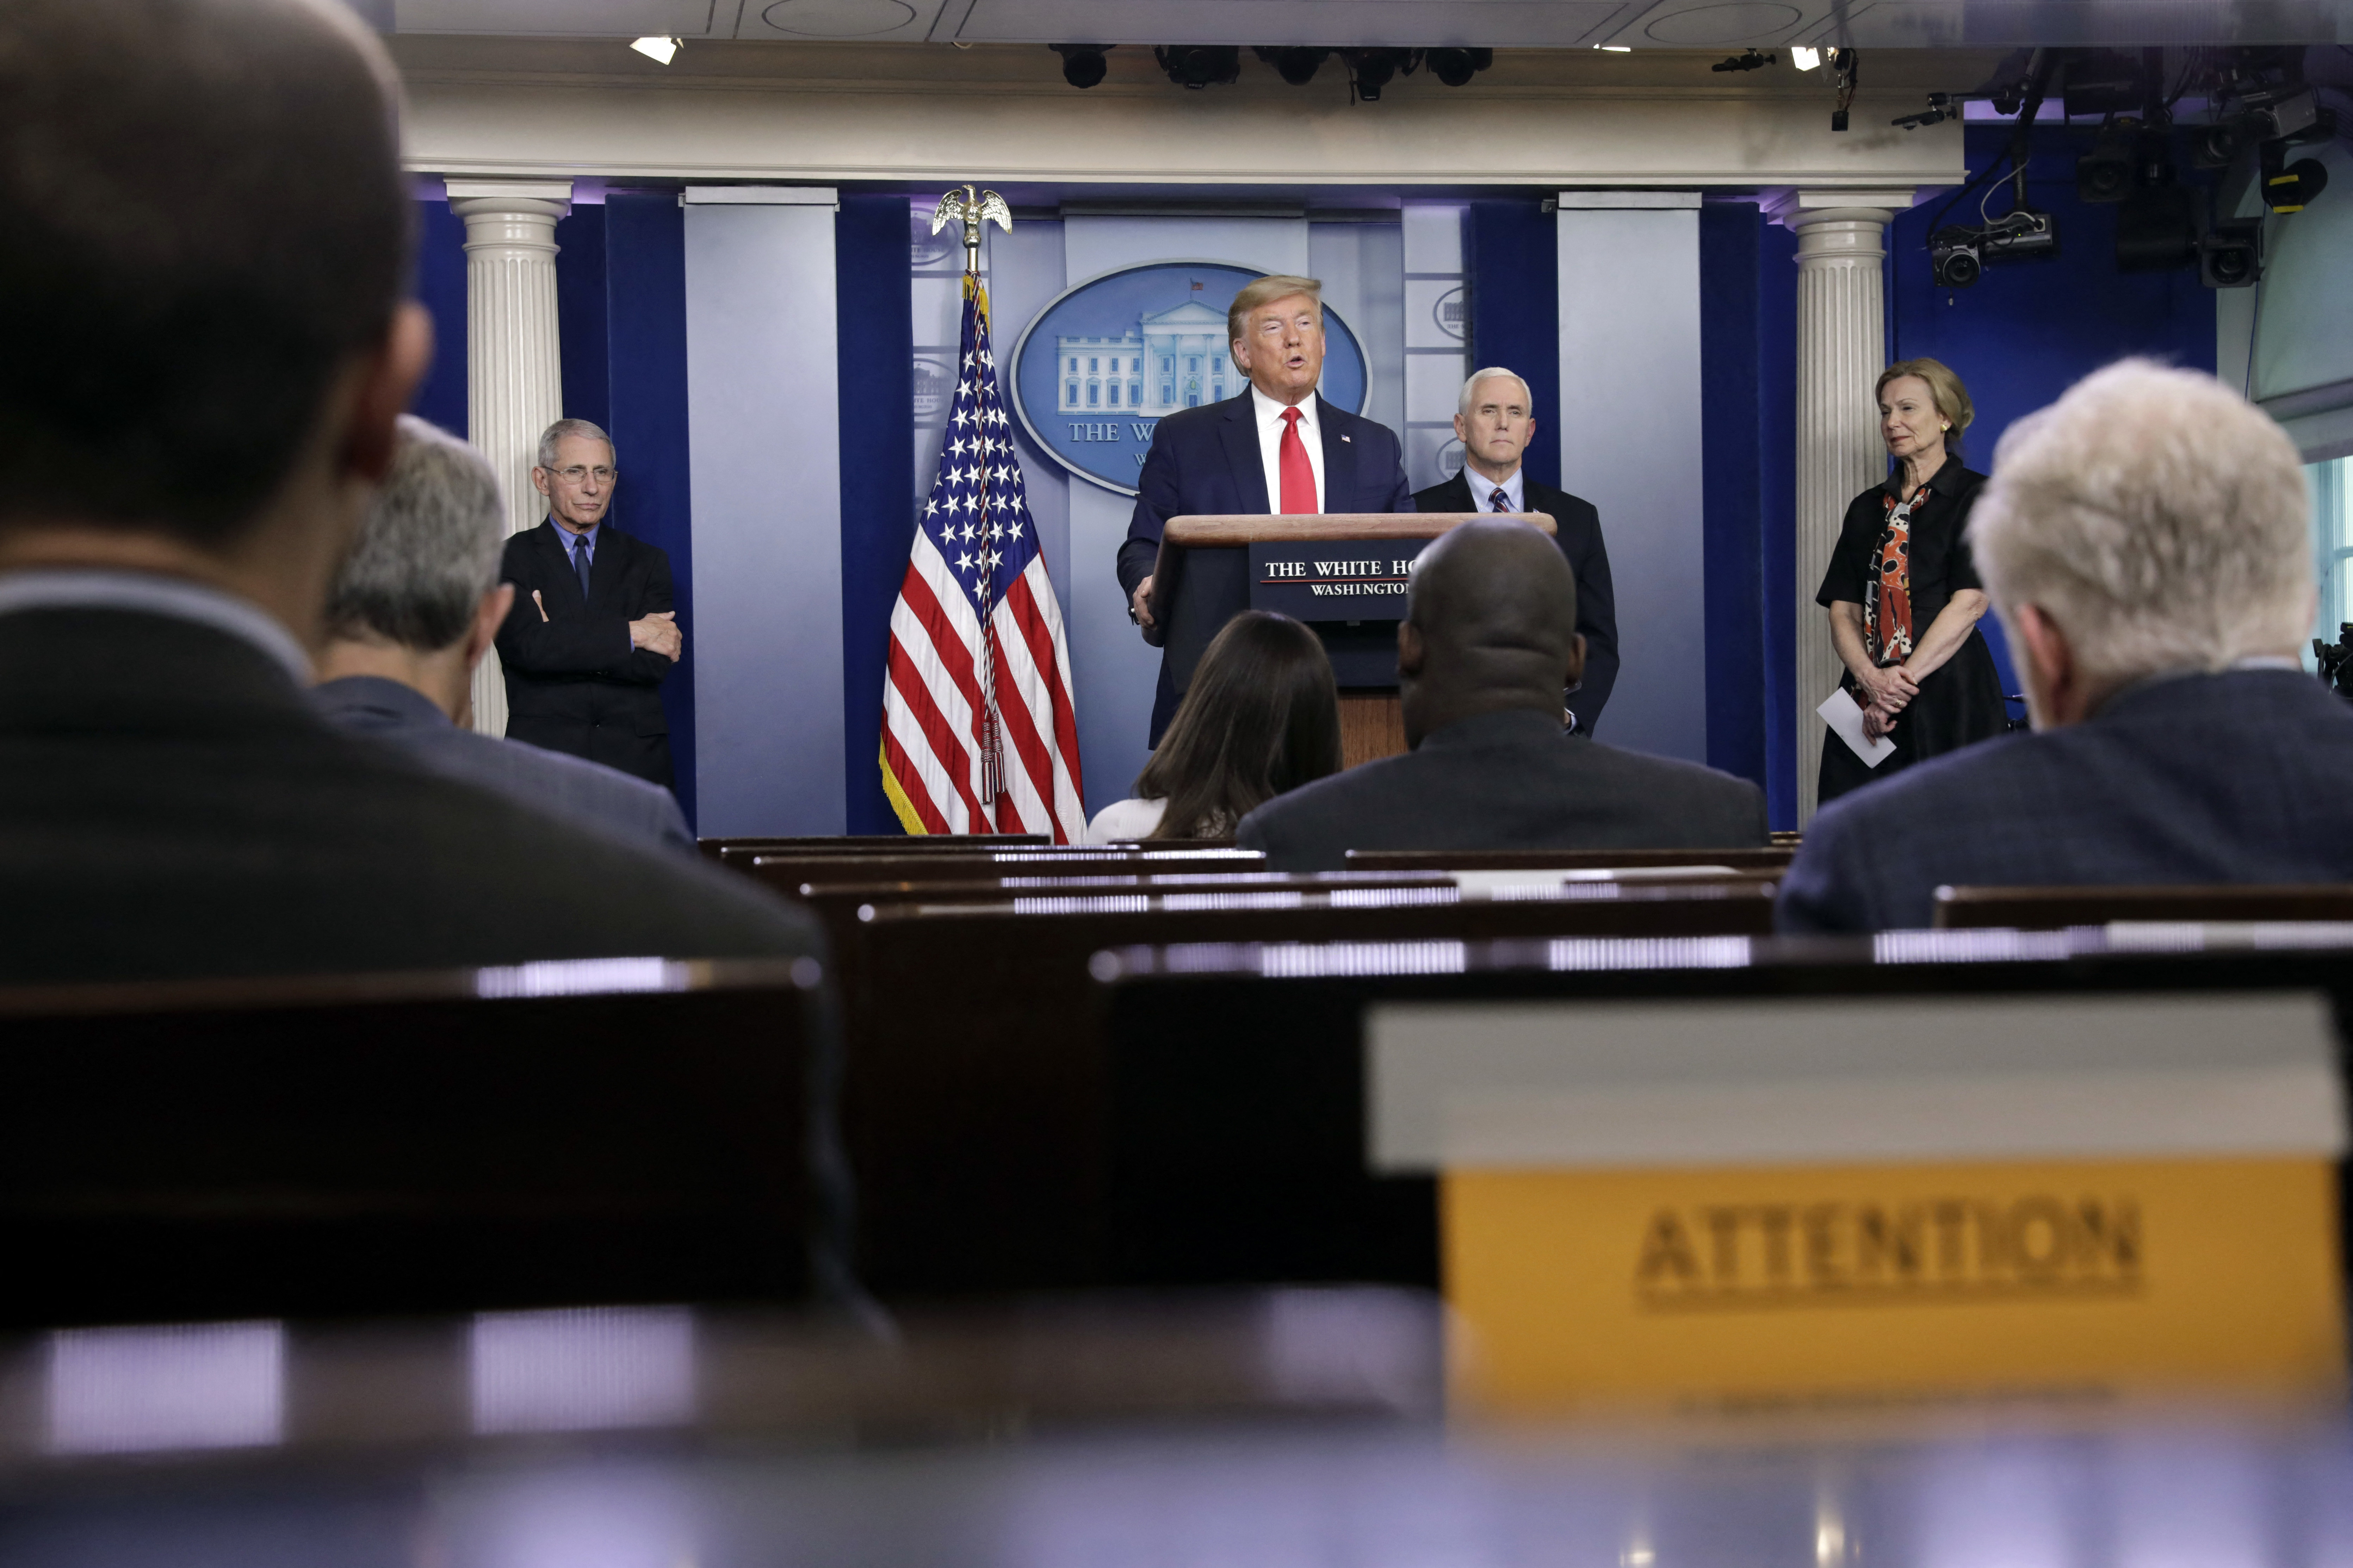 U.S. President Donald Trump speaks during a press briefing on the Coronavirus COVID-19 pandemic with members of the Coronavirus Task Force at the White House in Washington on March 26, 2020. Photo by Yuri Gripas/ABACAPRESS.COM